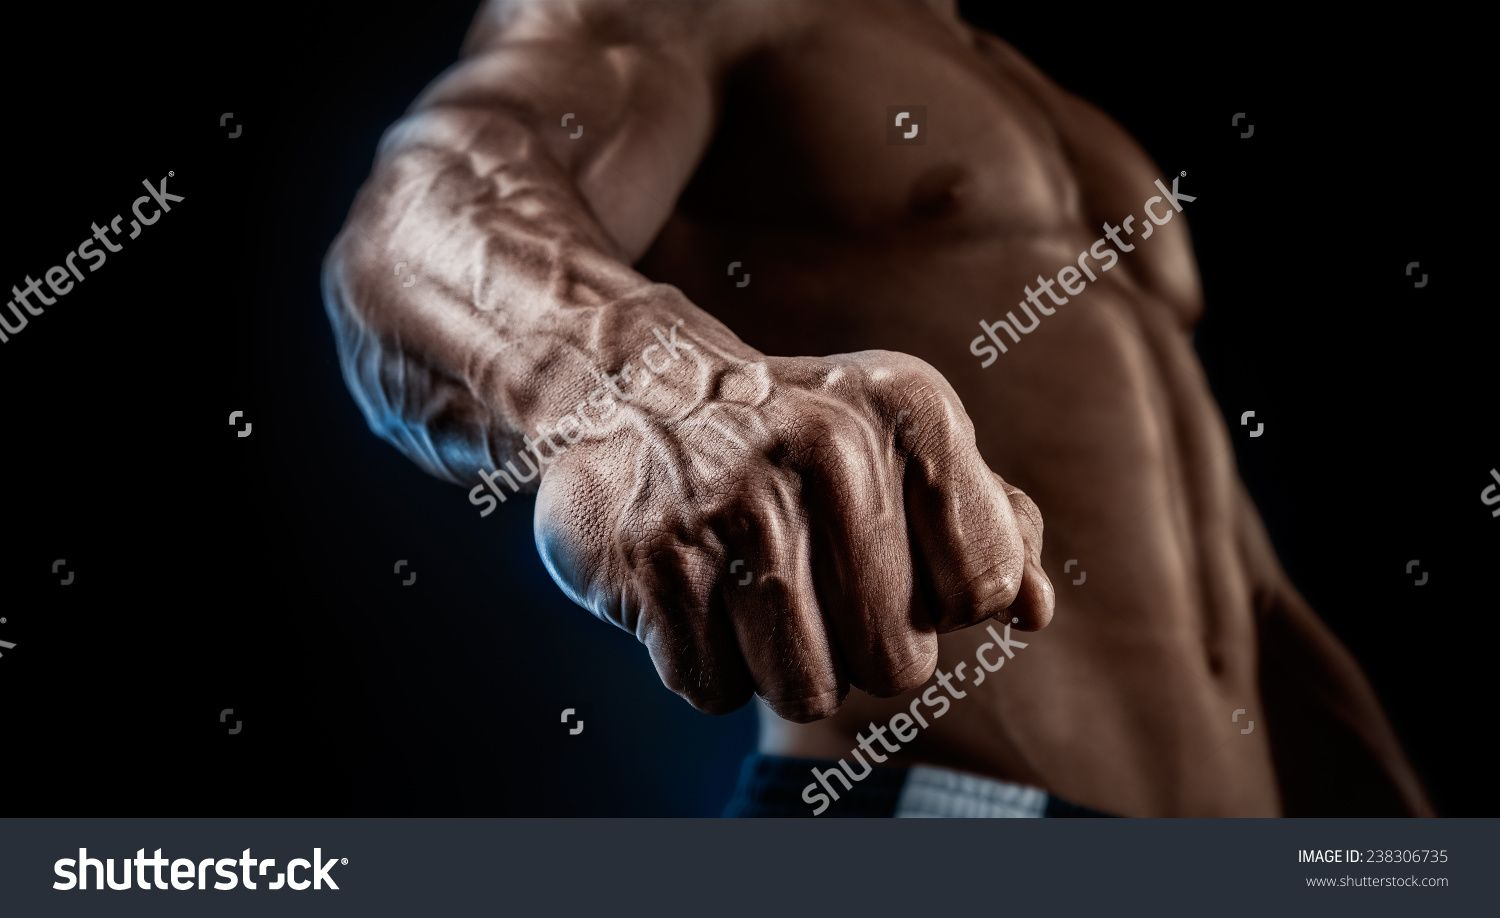 RightHander Punch. CloseUp Of A Man'S Fist. Strong And